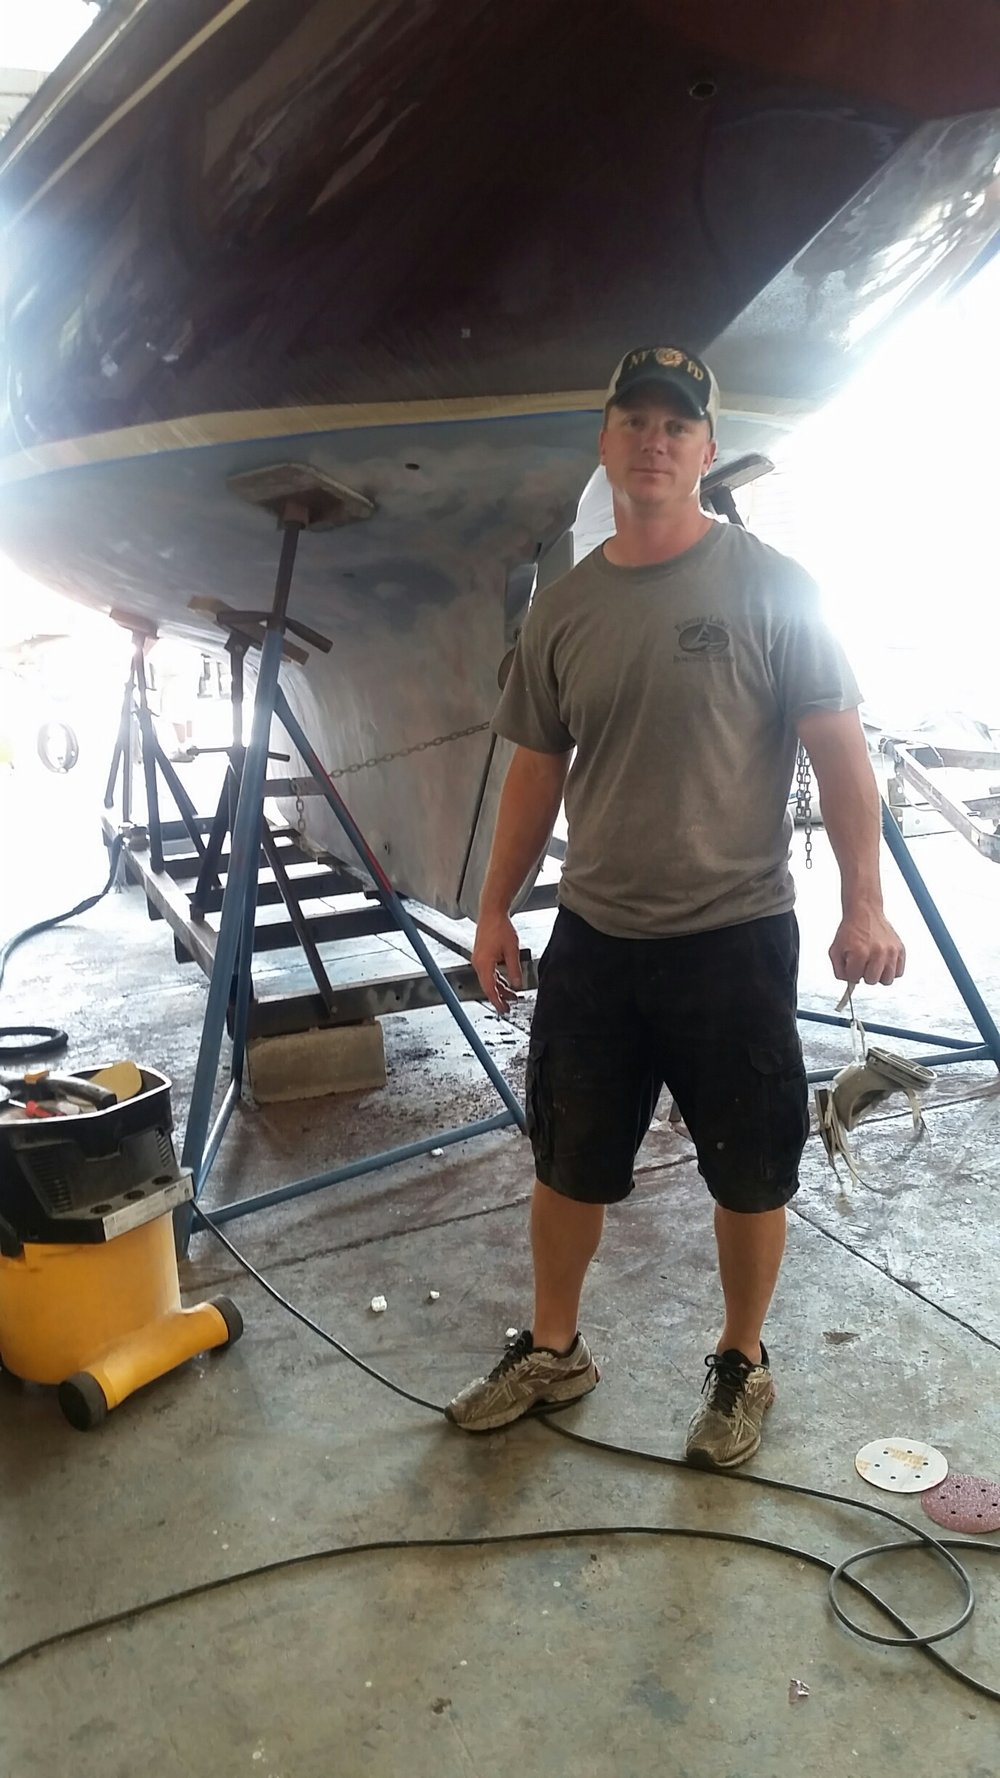 John Haney-Owner  - After college John devoted himself to developing an expertise in boat painting and, in particular the art of applying awl grip in a way that assures an eye-popping finish. He understands better than most that 90% of a quality finished product is in the preparation.